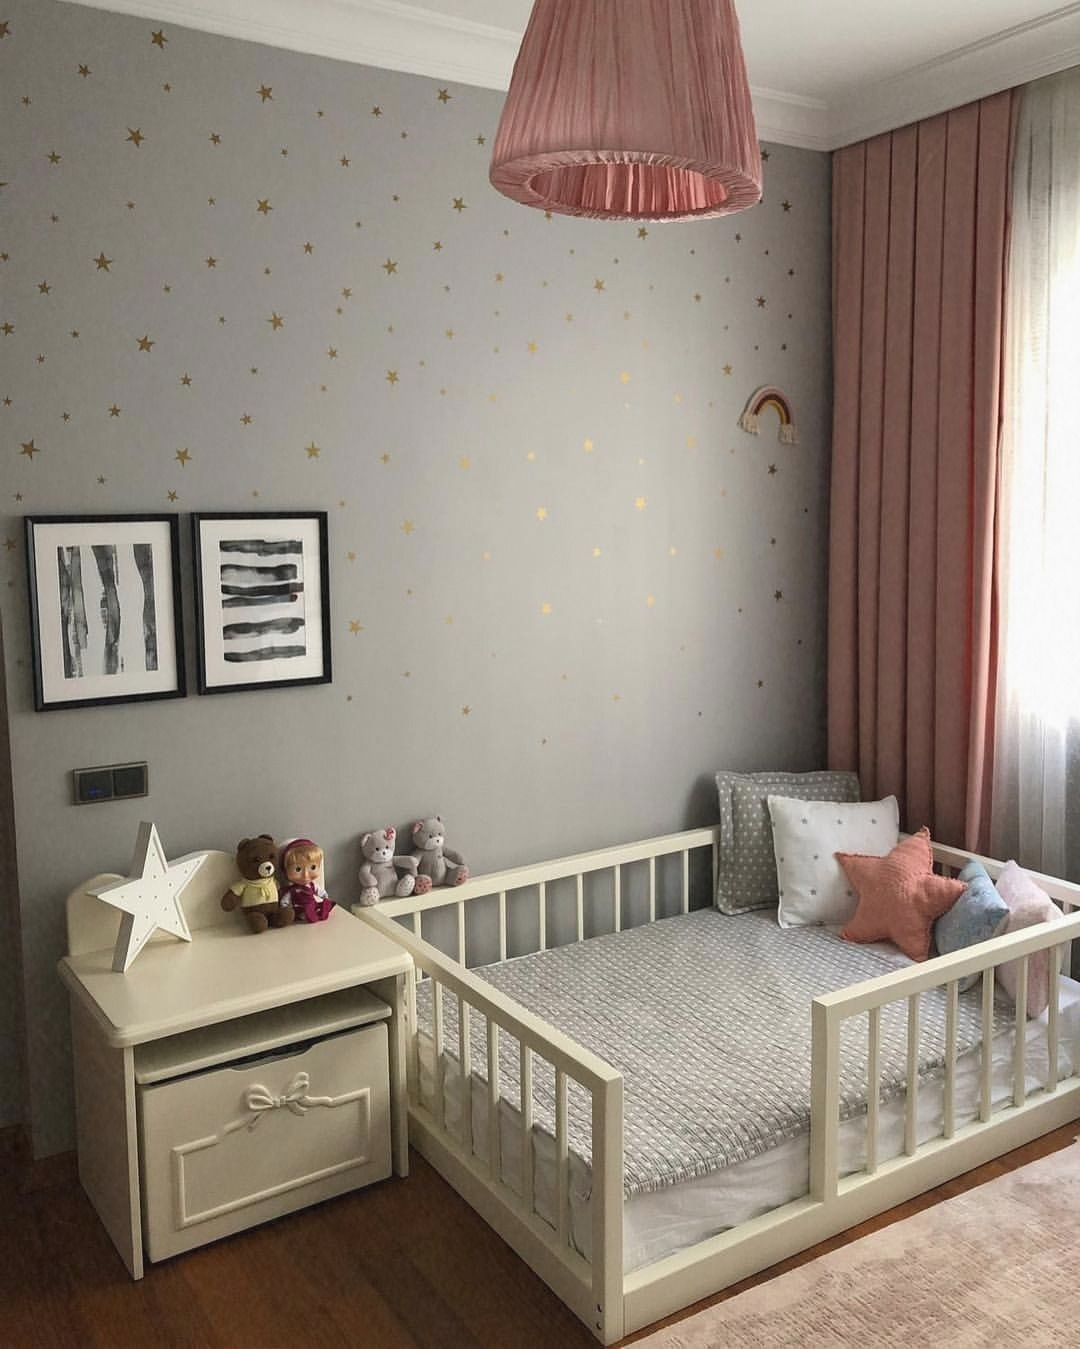 30+ Stylish & Chic Kids Room Decorating Ideas – for Girls & Boys - pickndecor.com/furniture #toddlerrooms